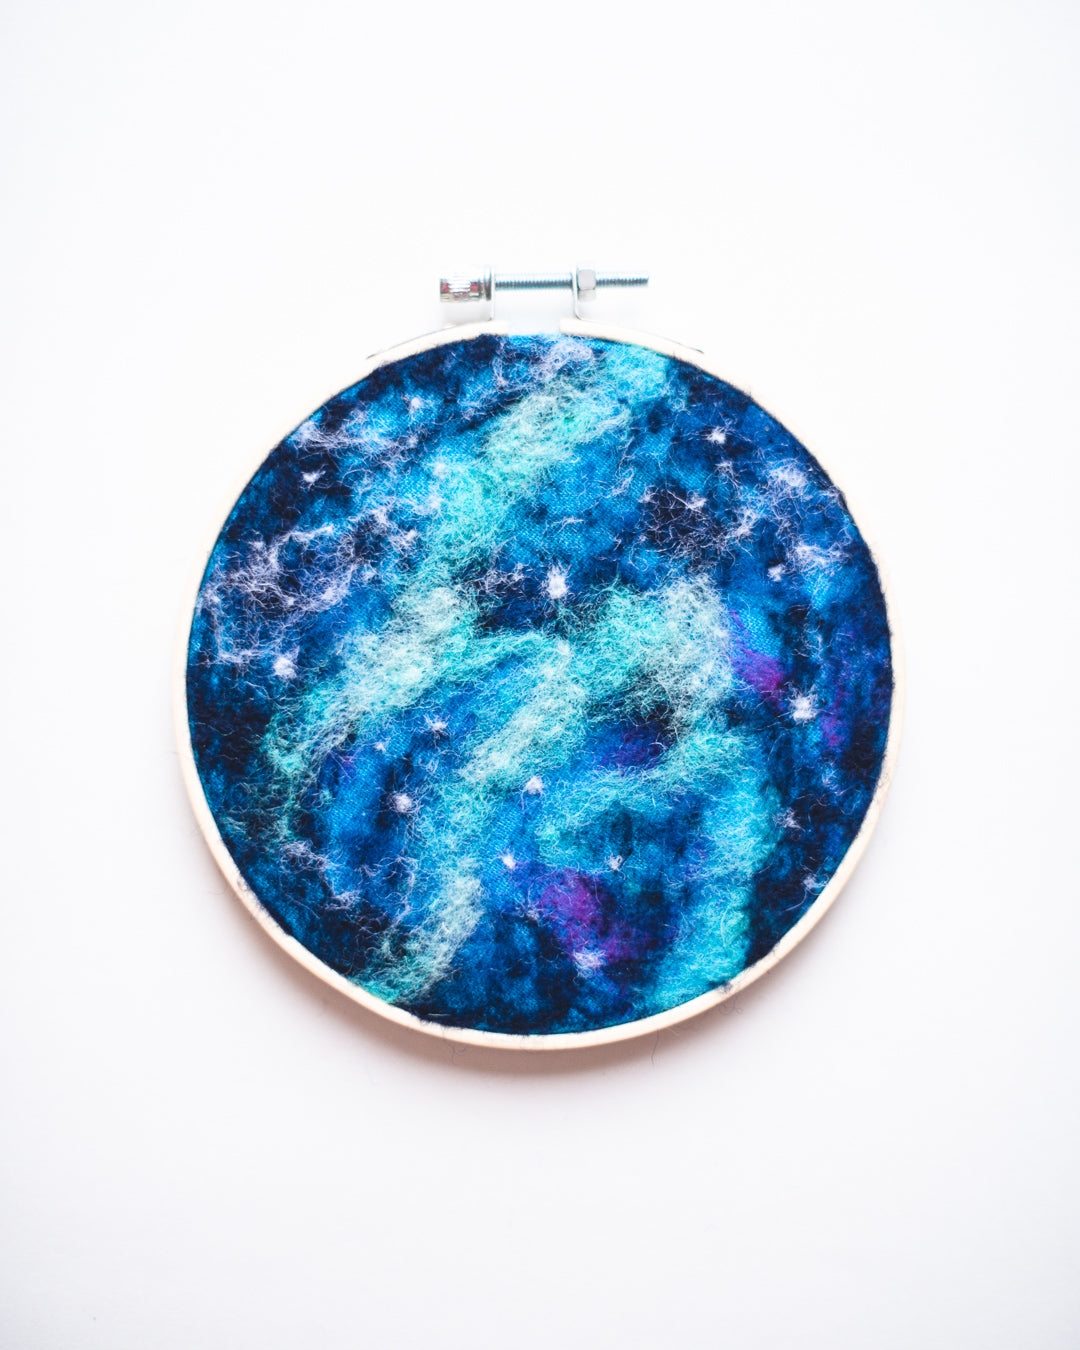 Galaxy Wool Felted Original Art no. 1 - 5 in. hoop